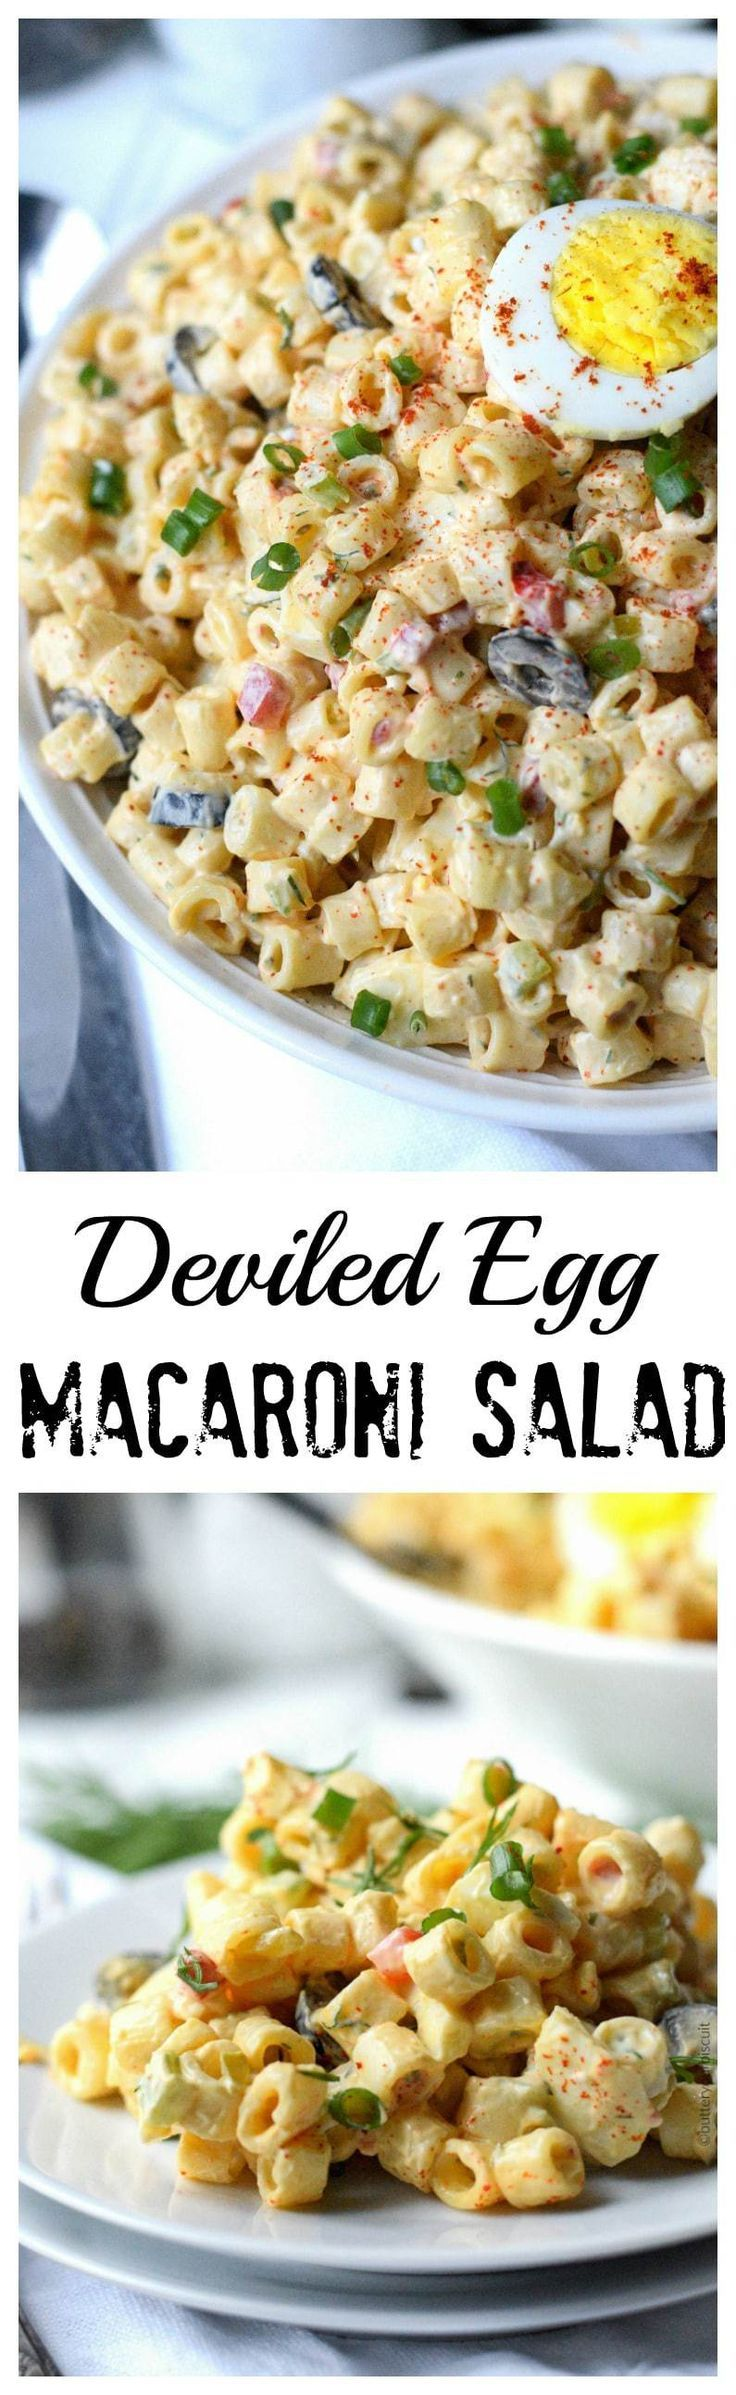 This deviled egg macaroni salad is packed with eggs and creamy noodles.